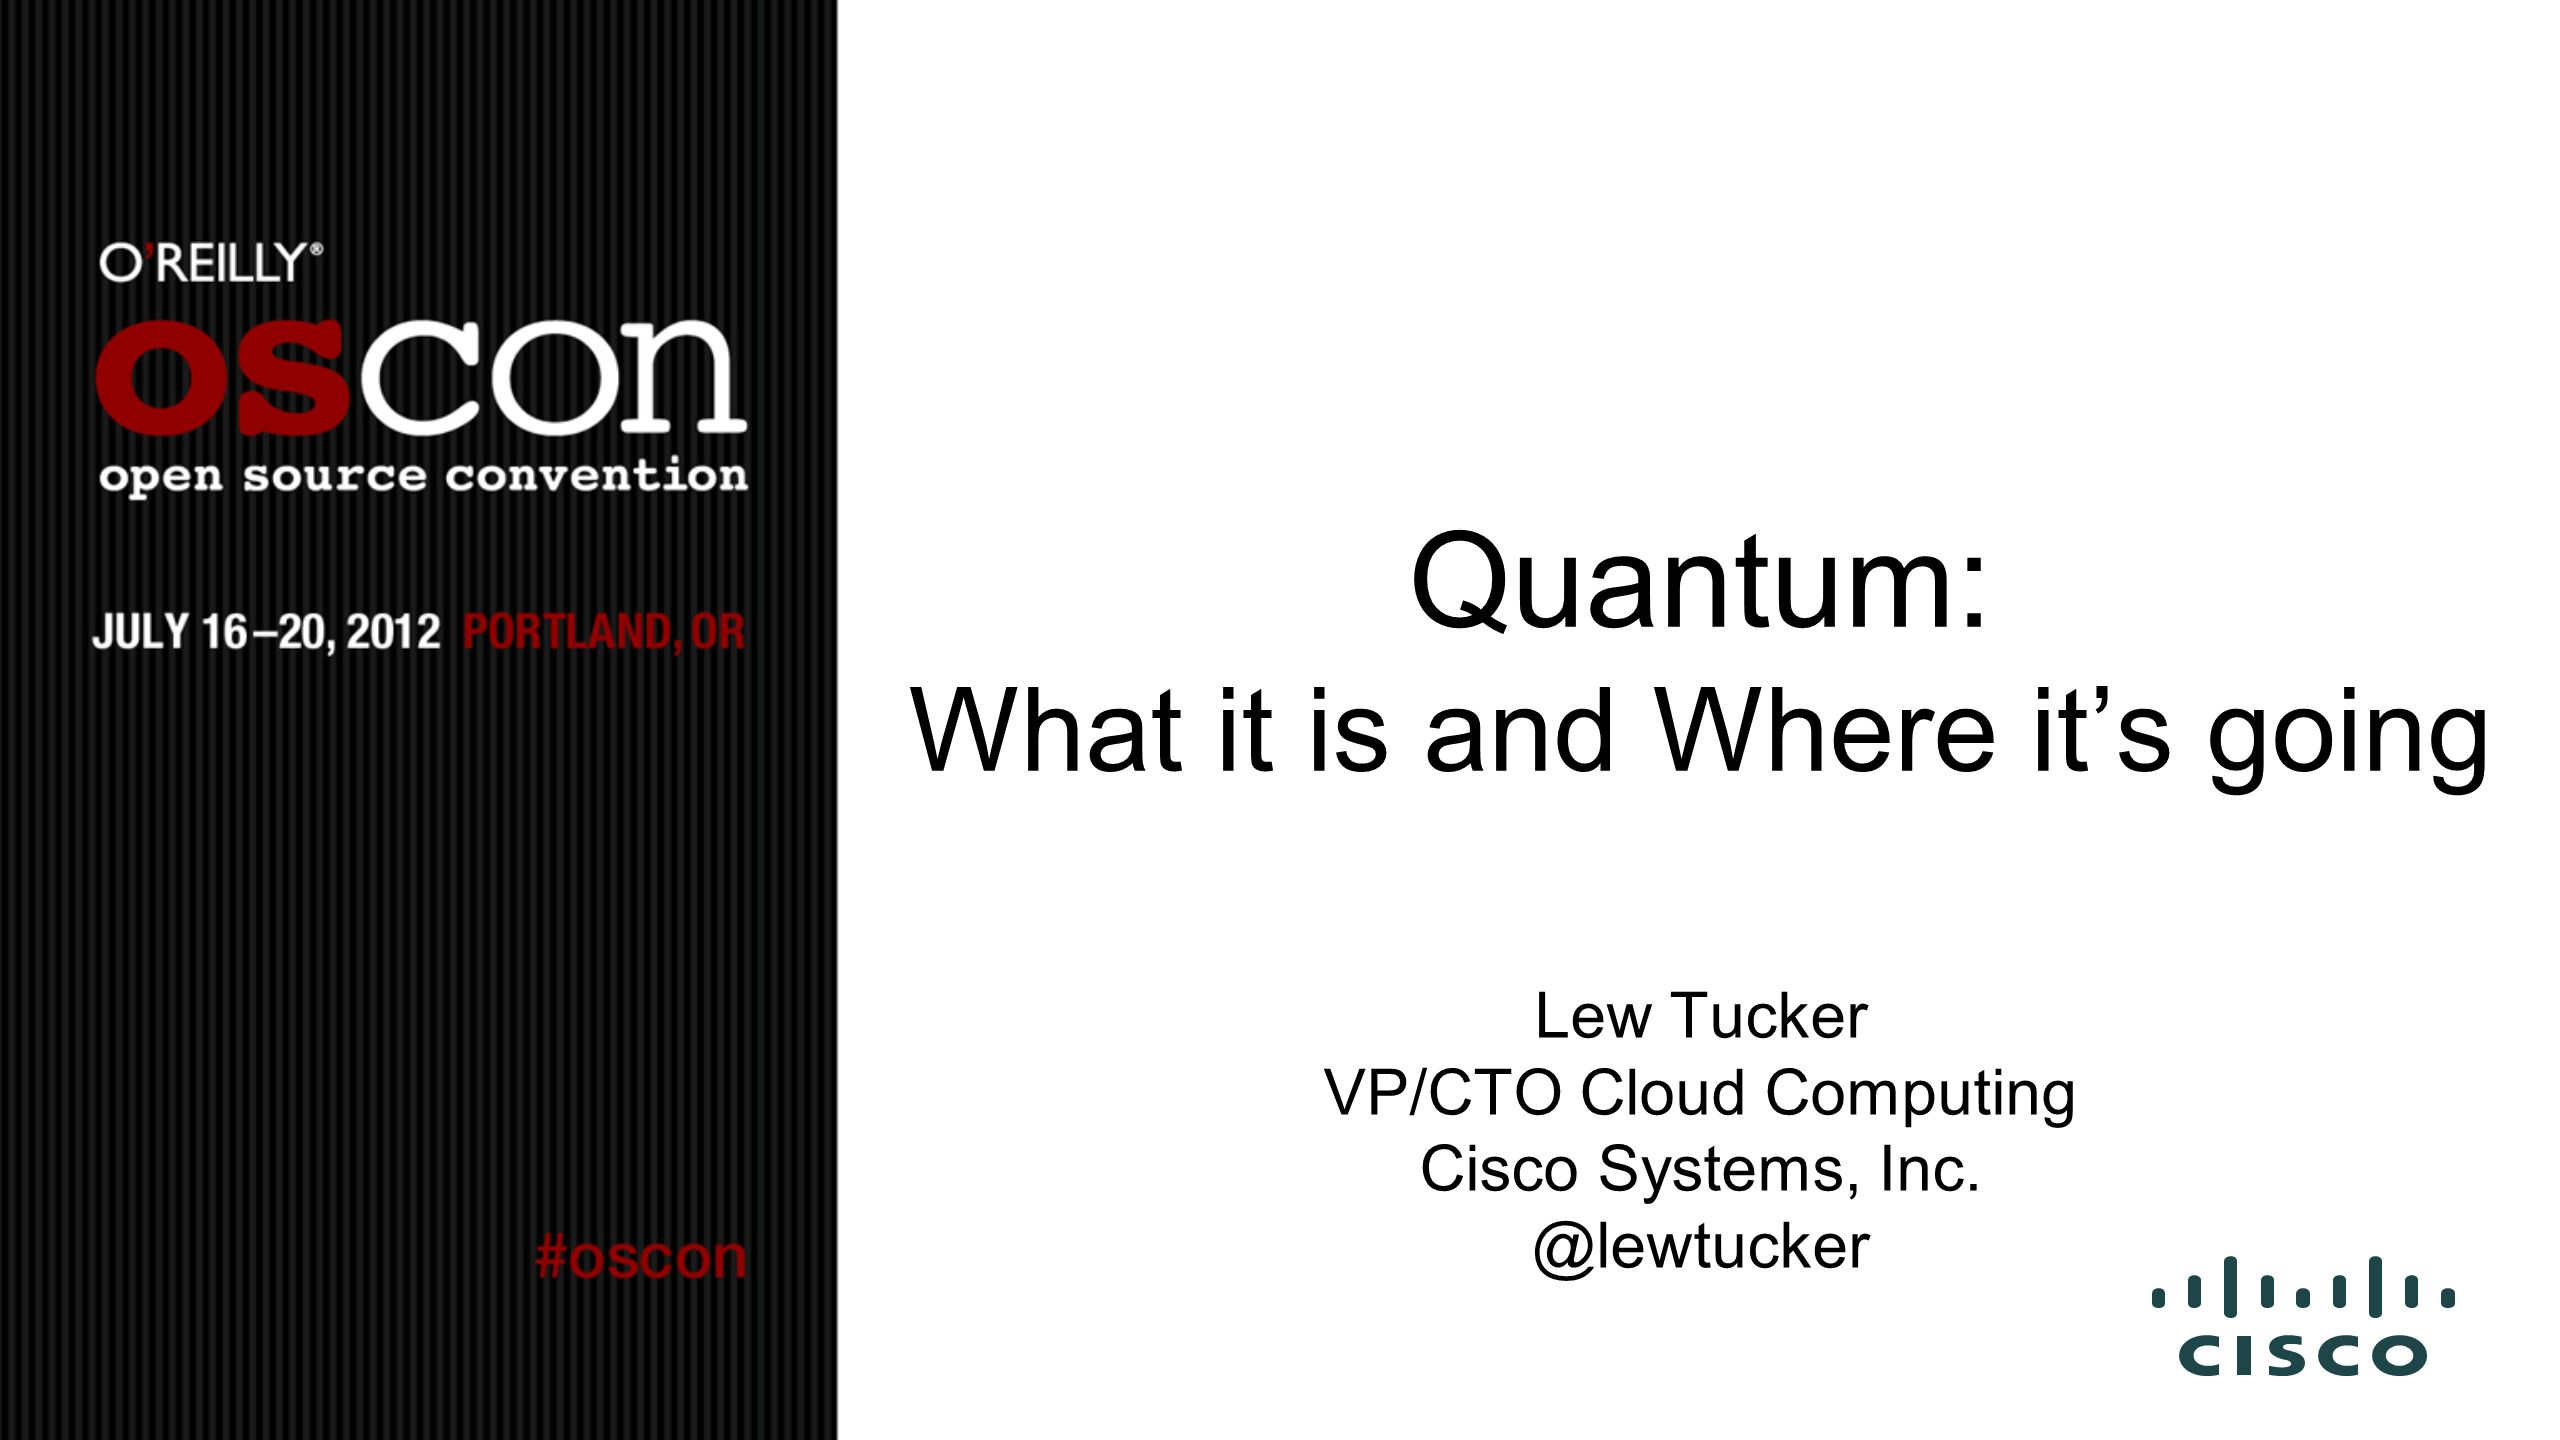 Quantum: What it is and Where it's going